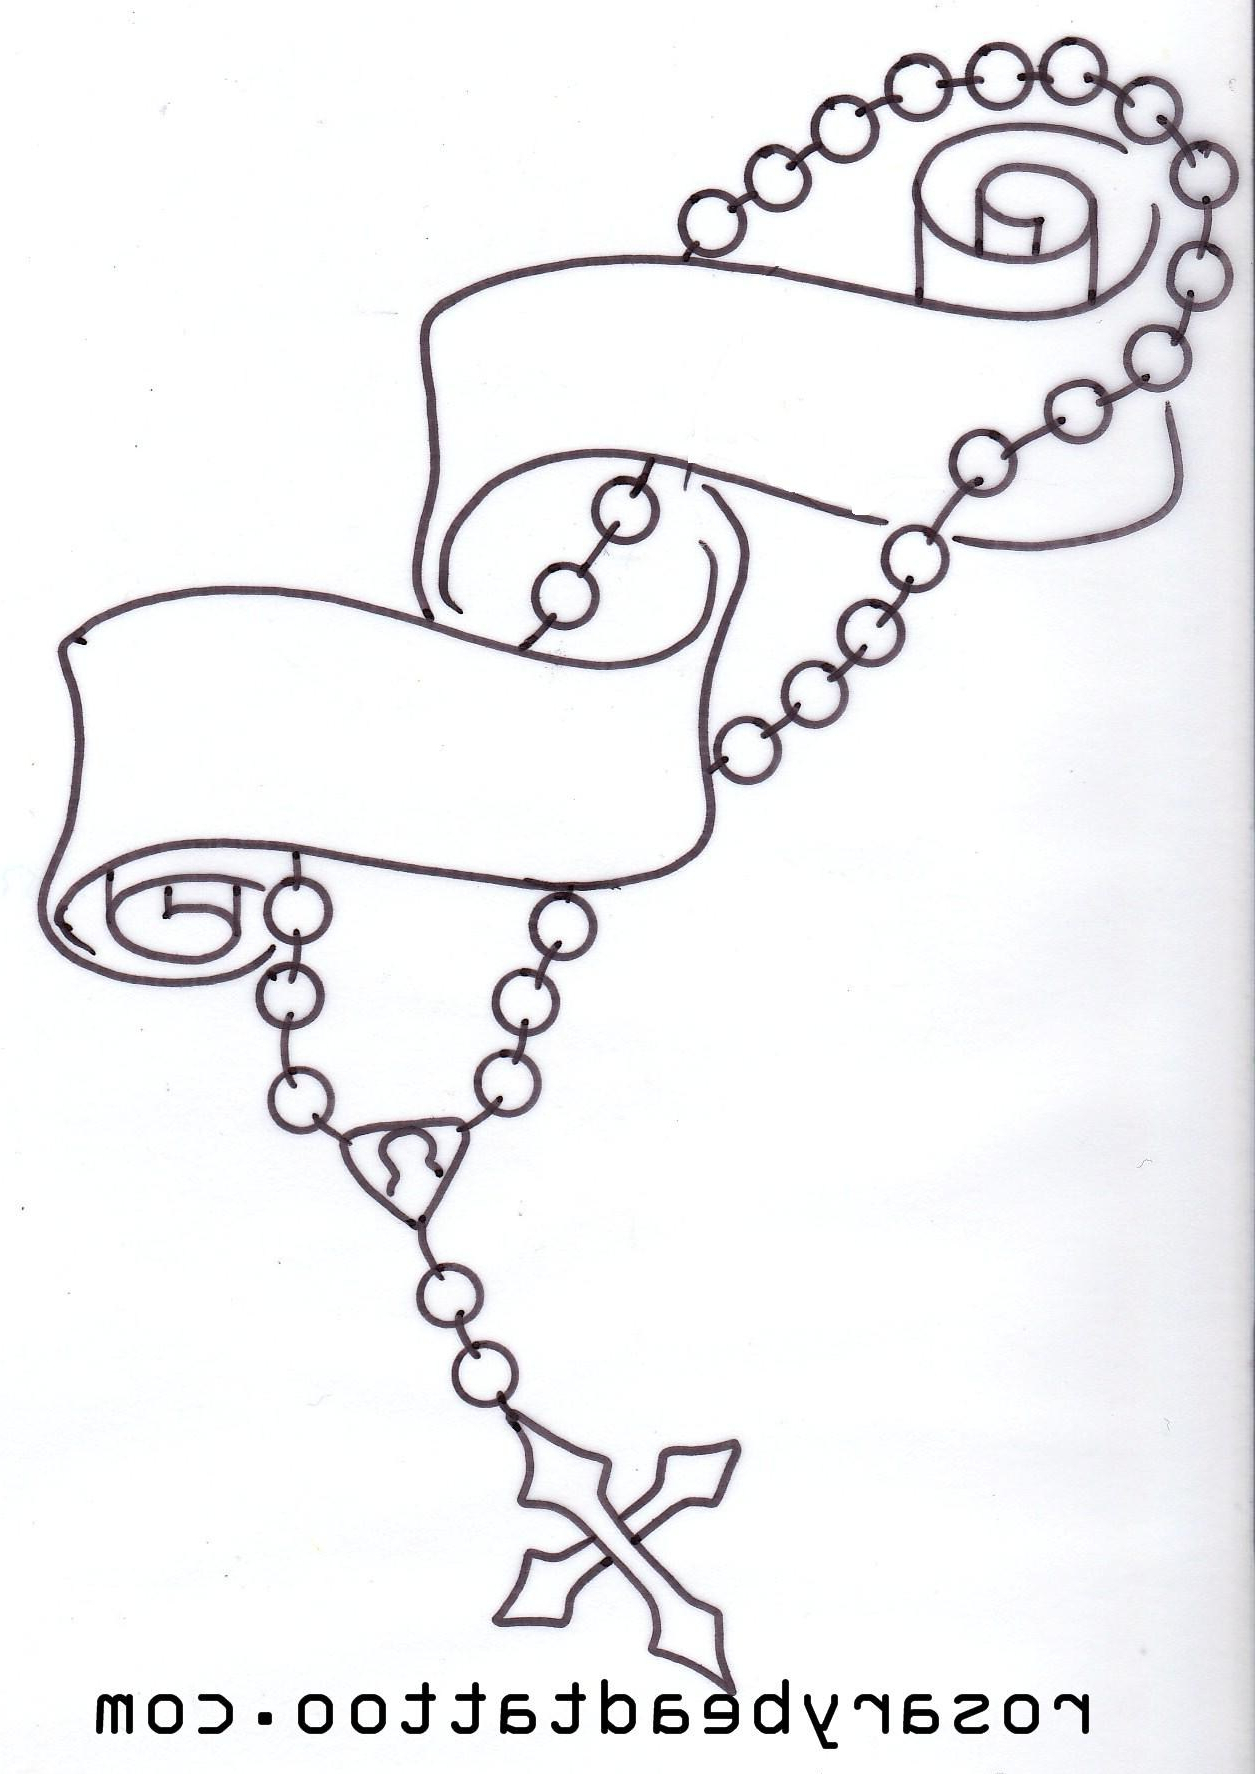 Praying Hands With Rosary Drawing At Getdrawings